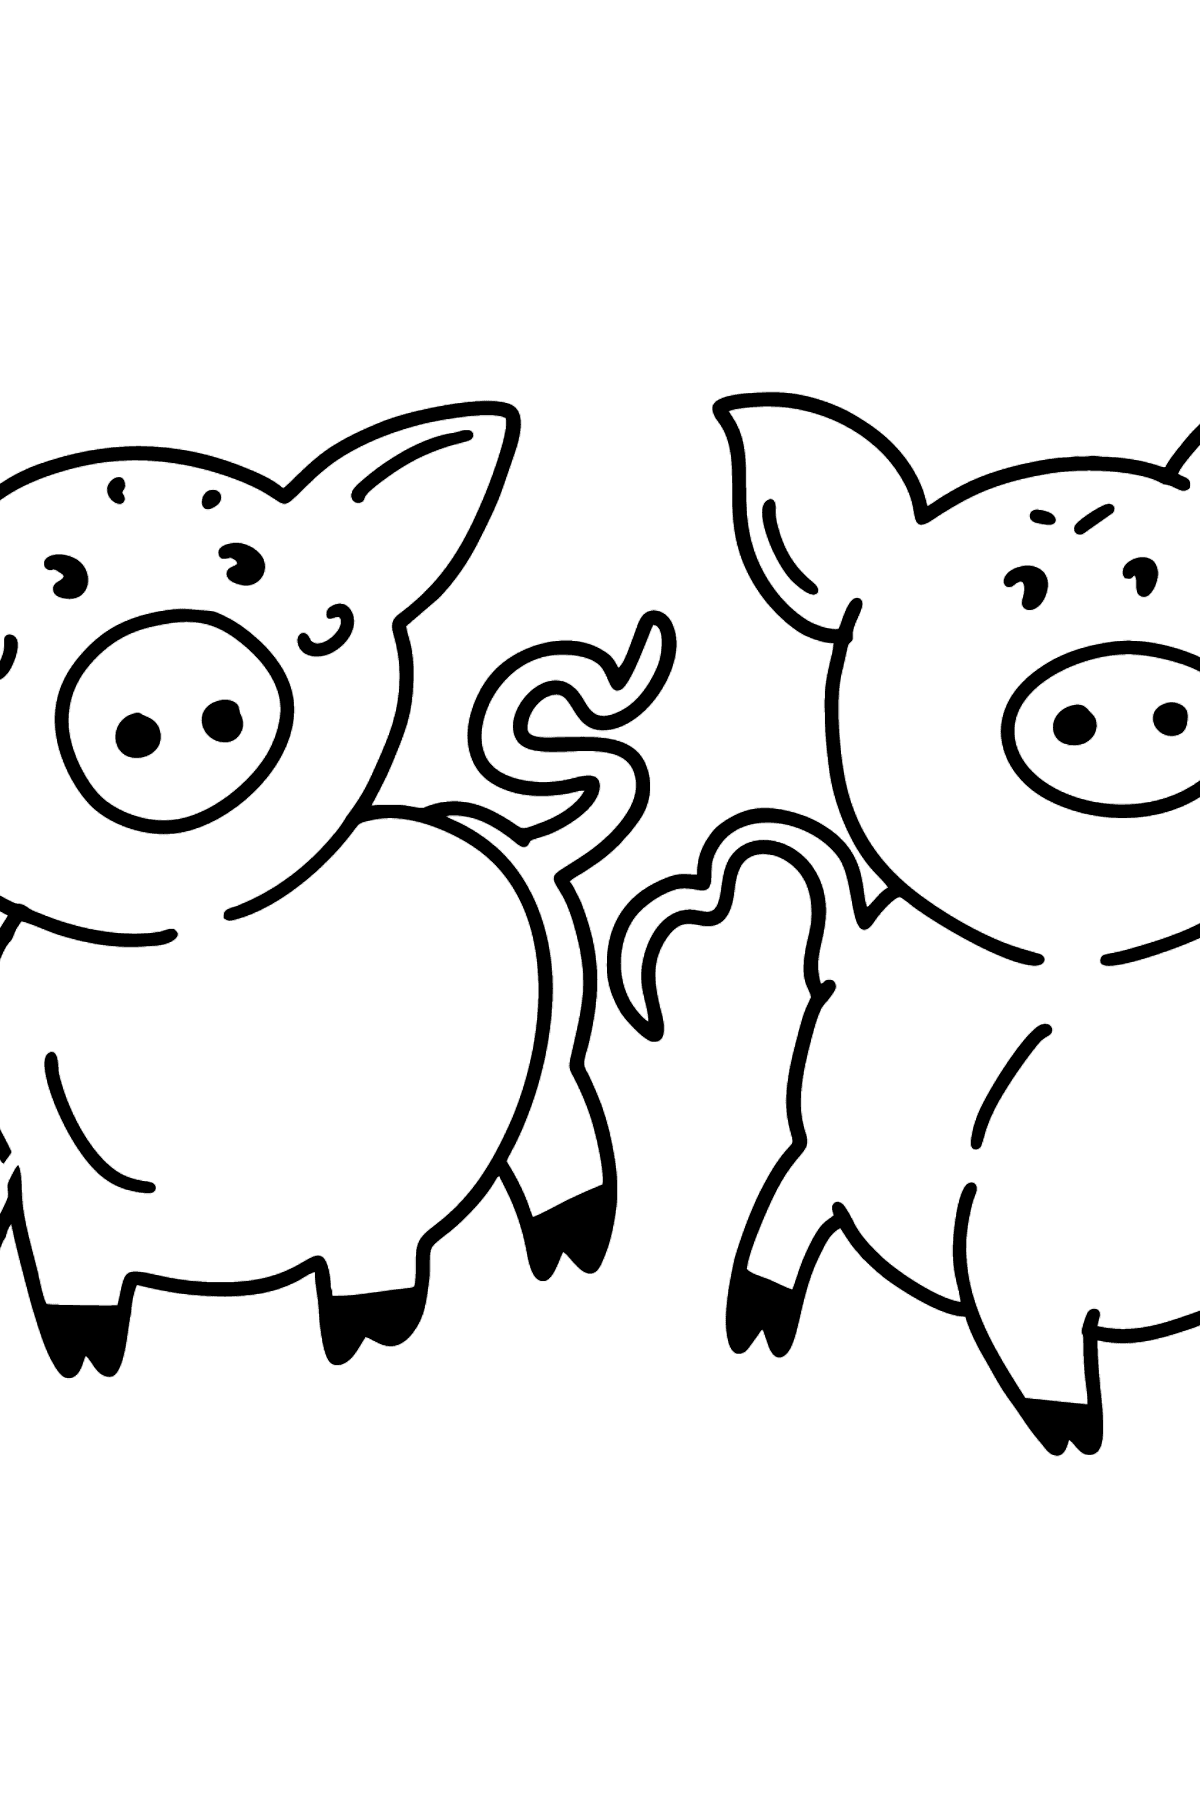 Piglets coloring page - Coloring Pages for Kids